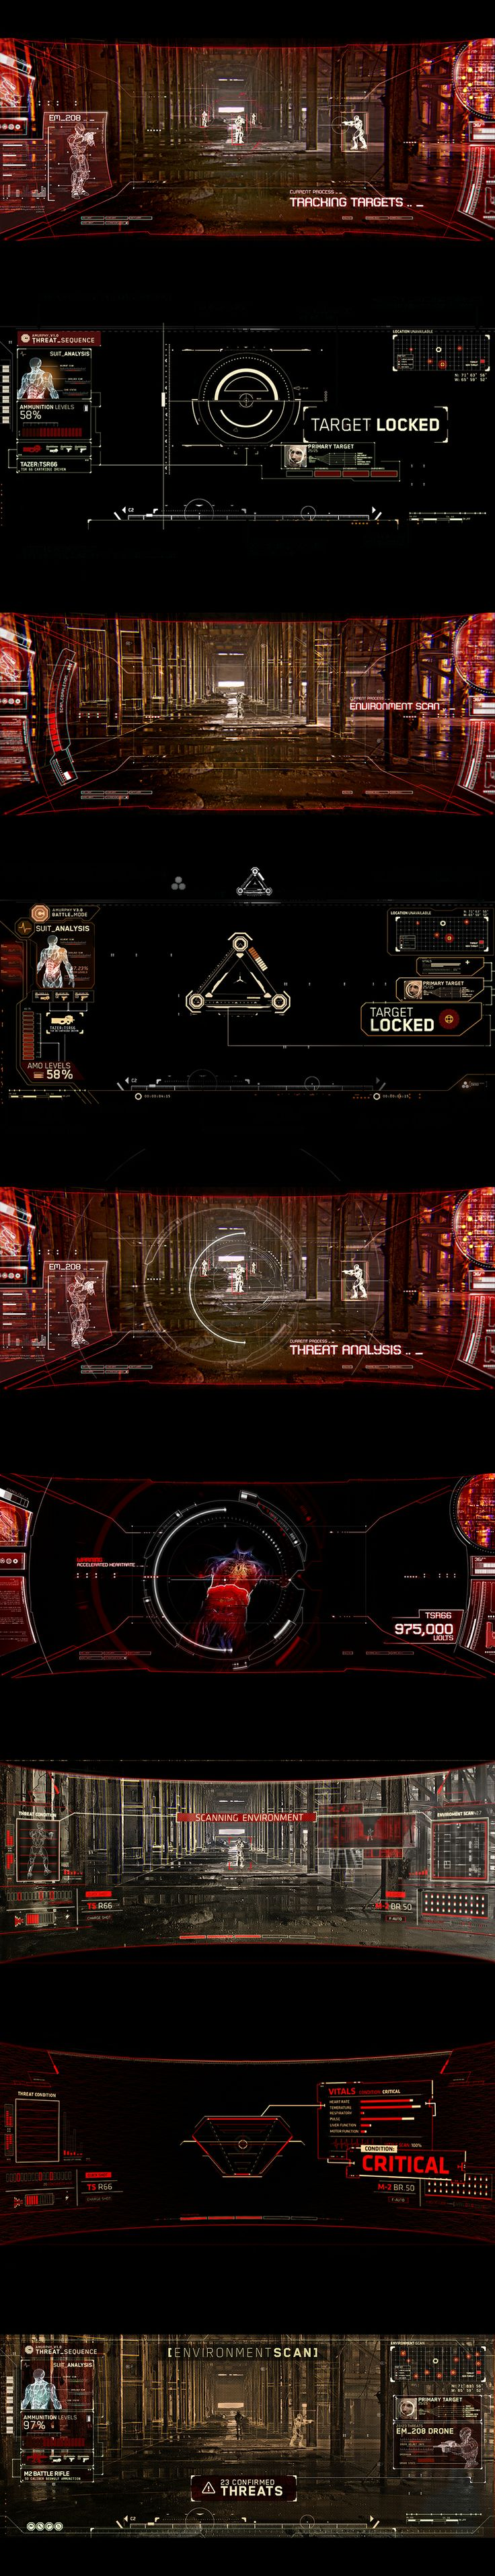 Robocop (2014) - HUD Design Check out more of our work: www.perceptionnyc.com